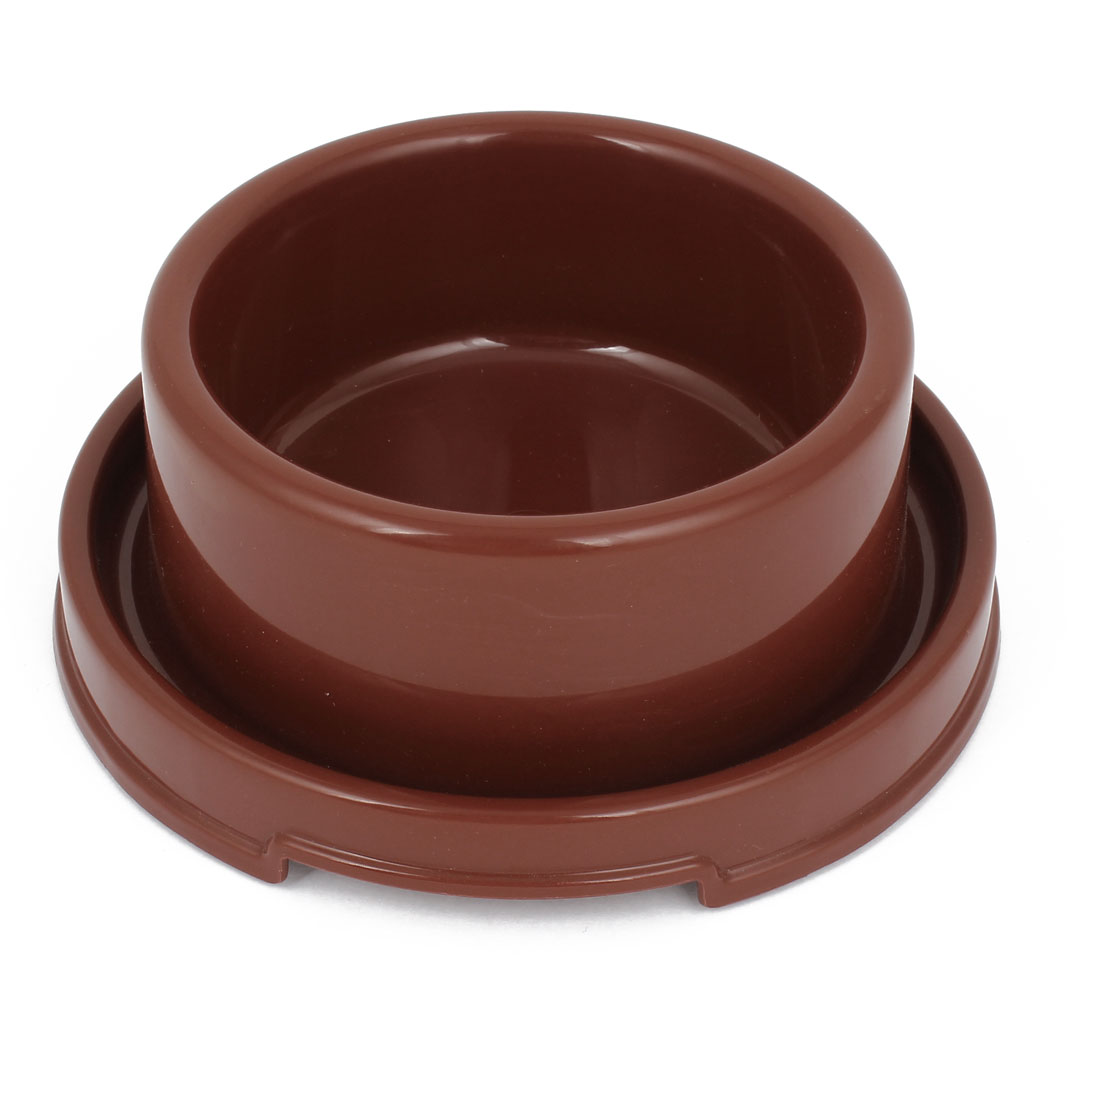 "7.2"" Diameter 2.8"" Height Doggie Dog Pet Plastic Eat Feeder Food Water Bowl Dish Coffee Color"